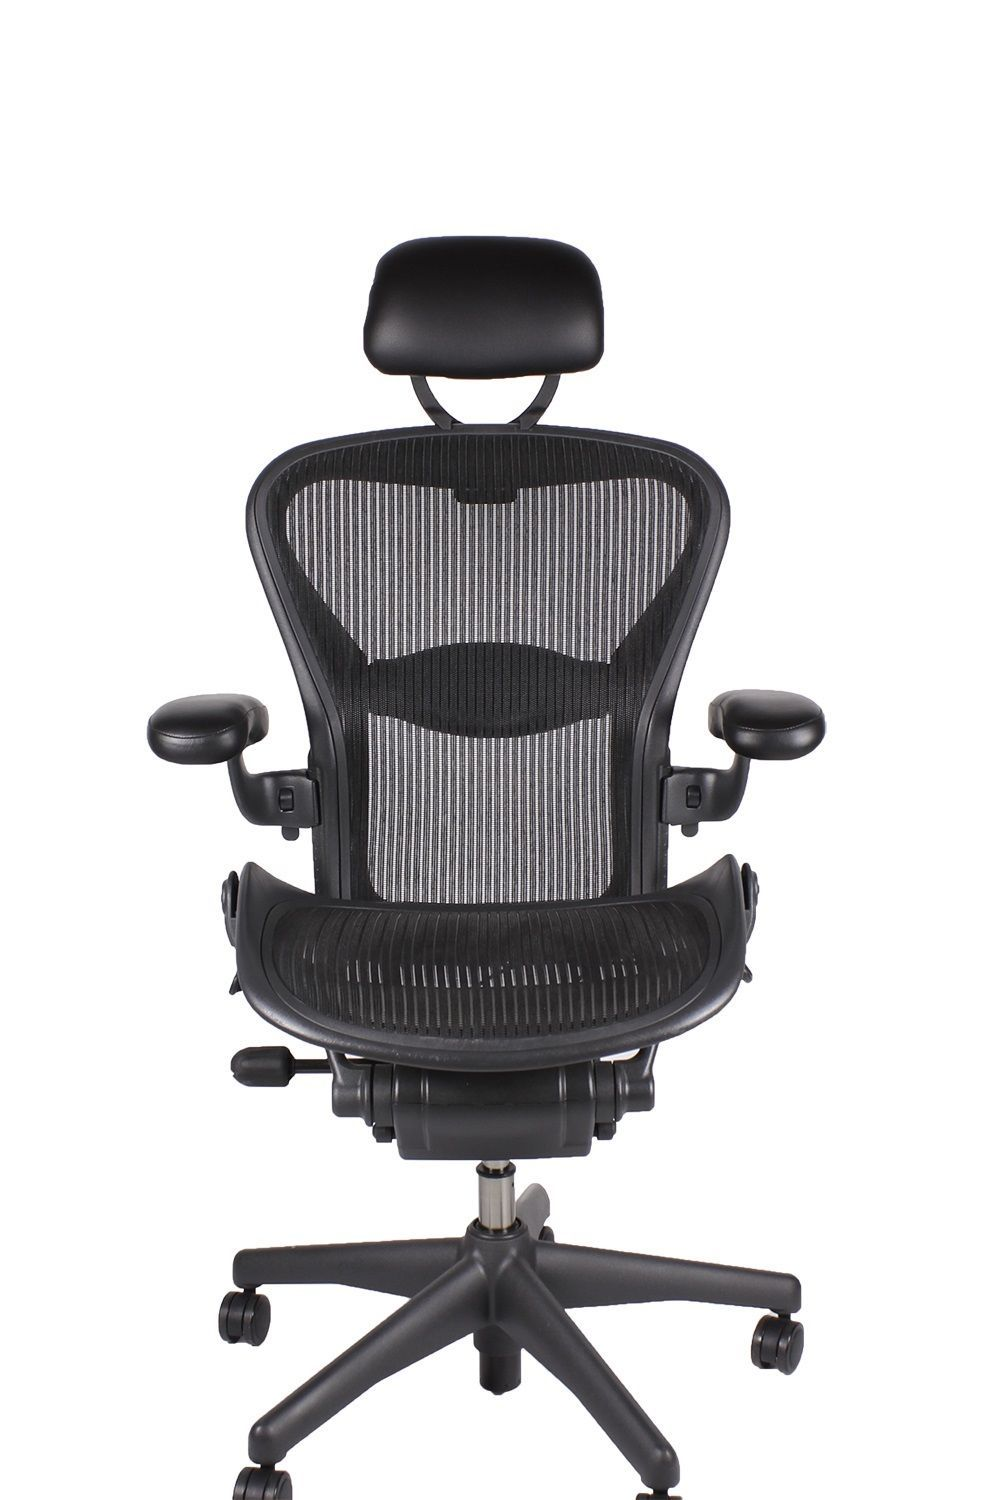 db010c14828e Herman Miller Aeron Open Box Fully Loaded Chairs with HEADREST - 10 Y  Warranty We can t advertise